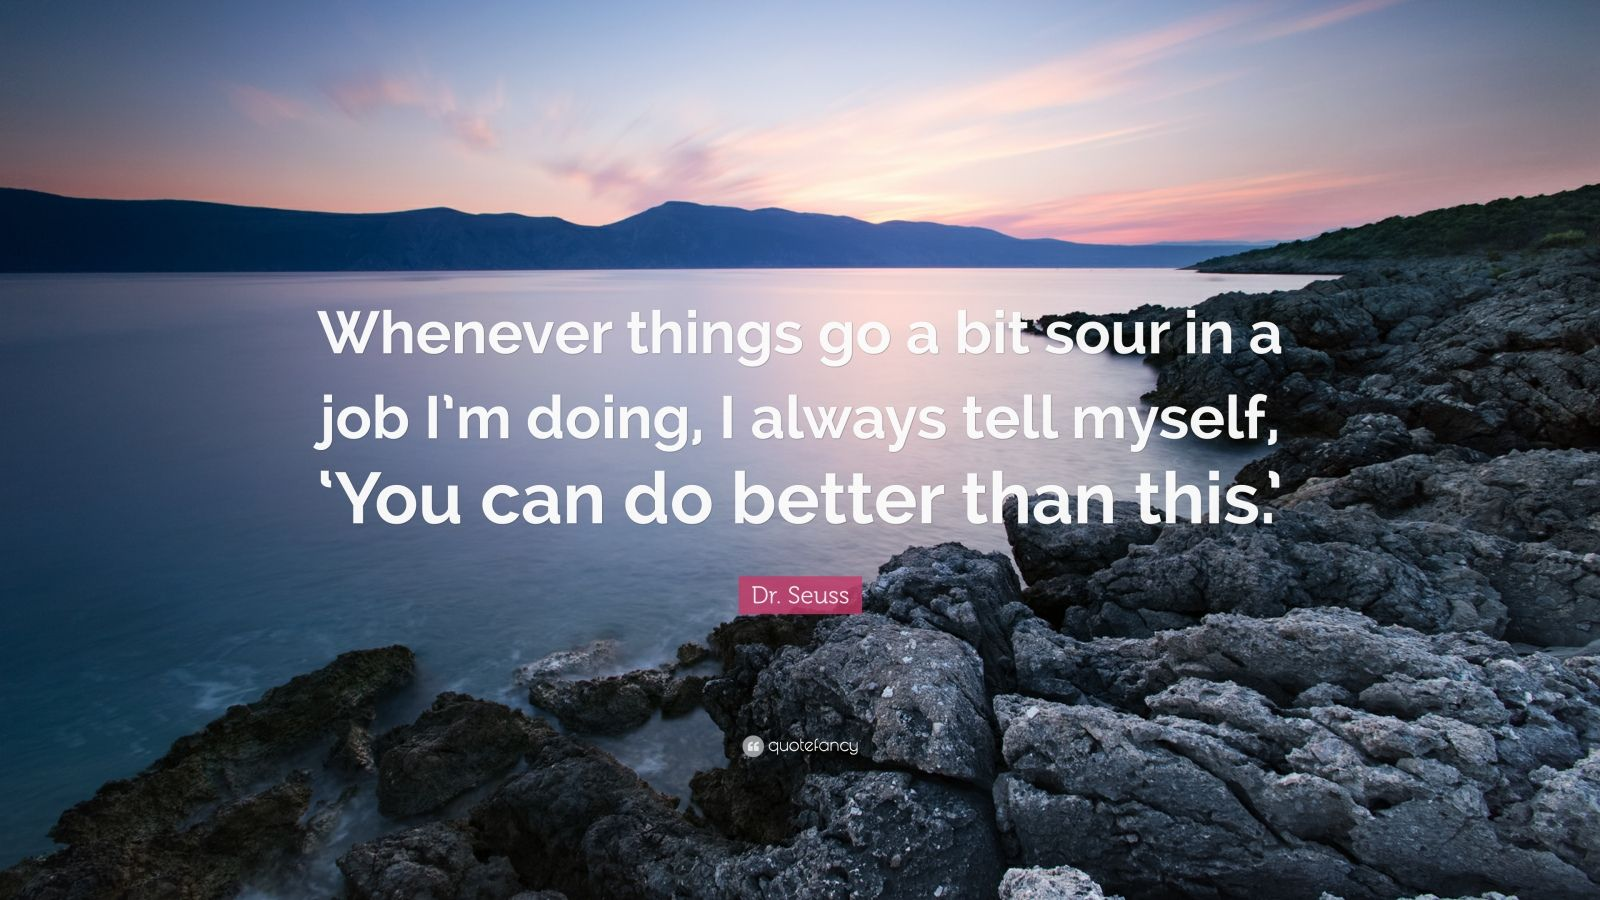 """Dr. Seuss Quote: """"Whenever things go a bit sour in a job I'm doing, I always tell myself, 'You can do better than this.'"""""""